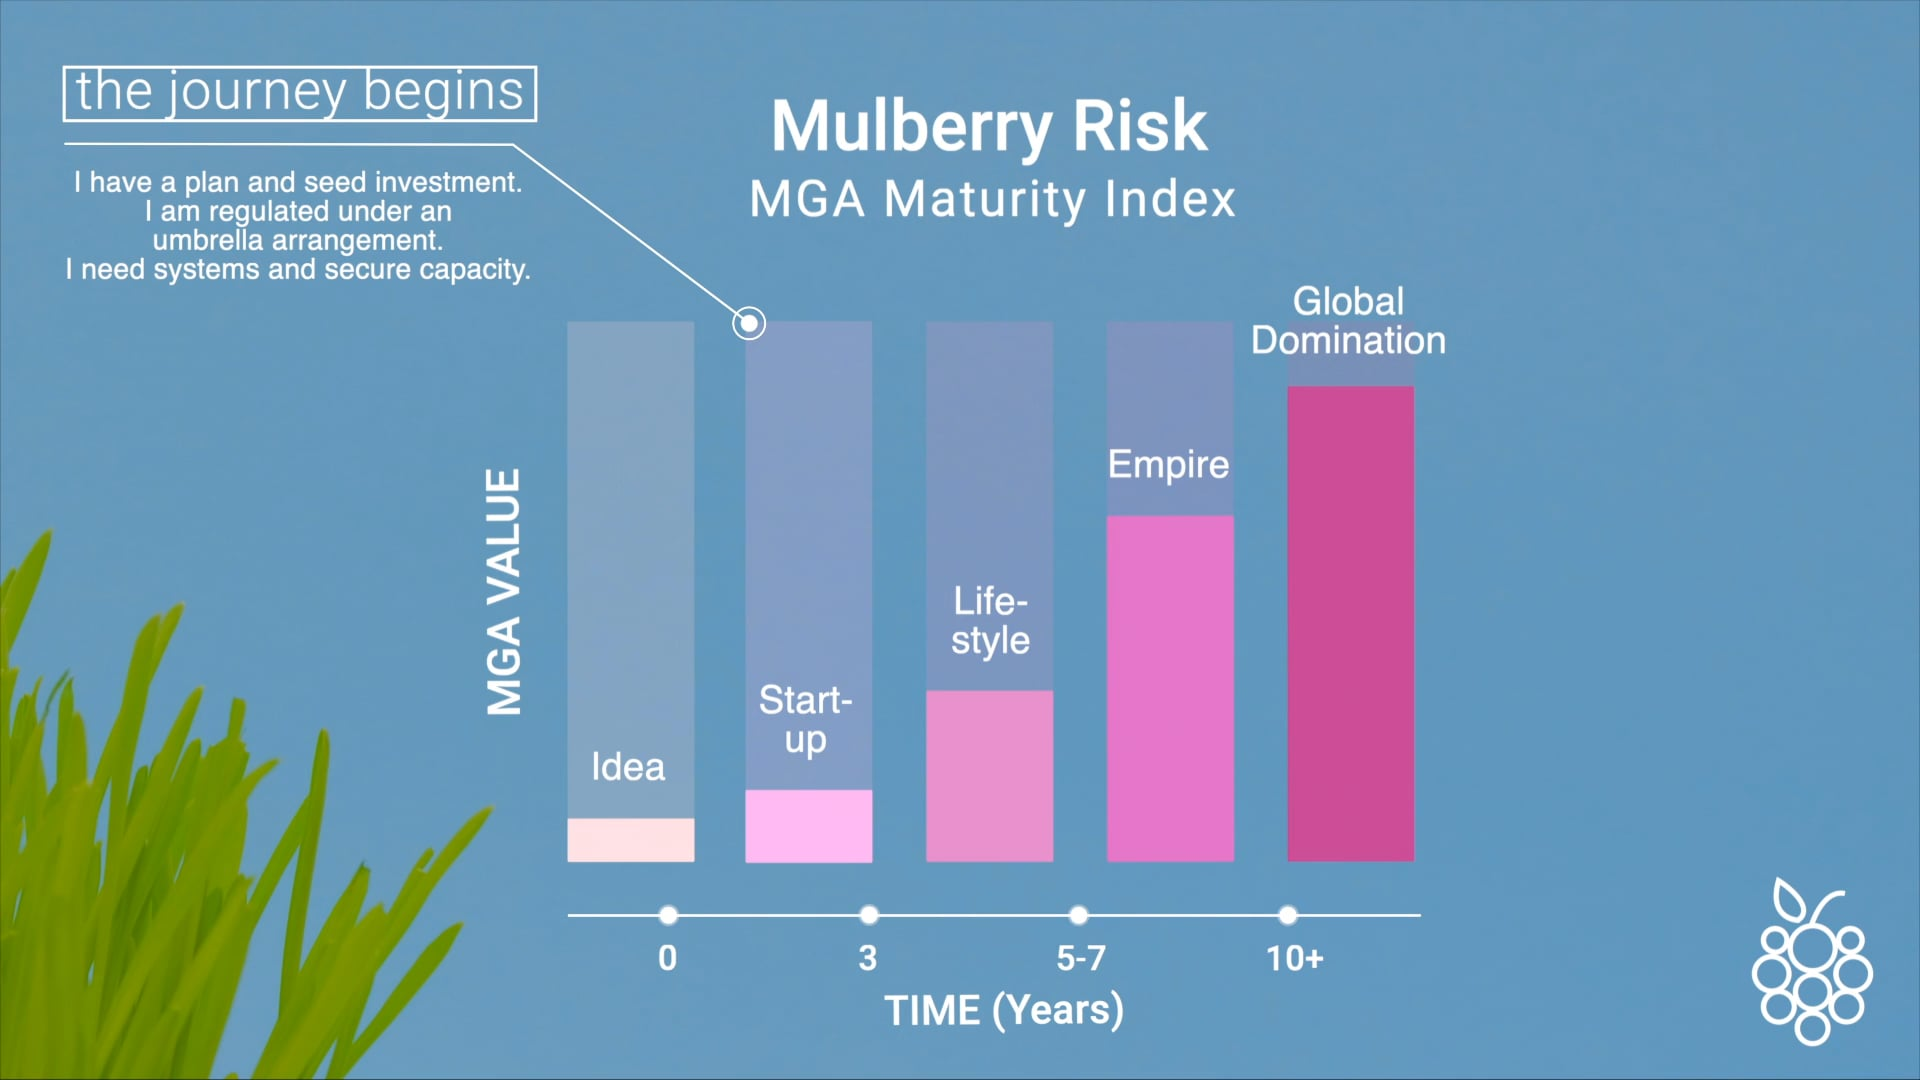 Mulberry Risk MGA Maturity Index